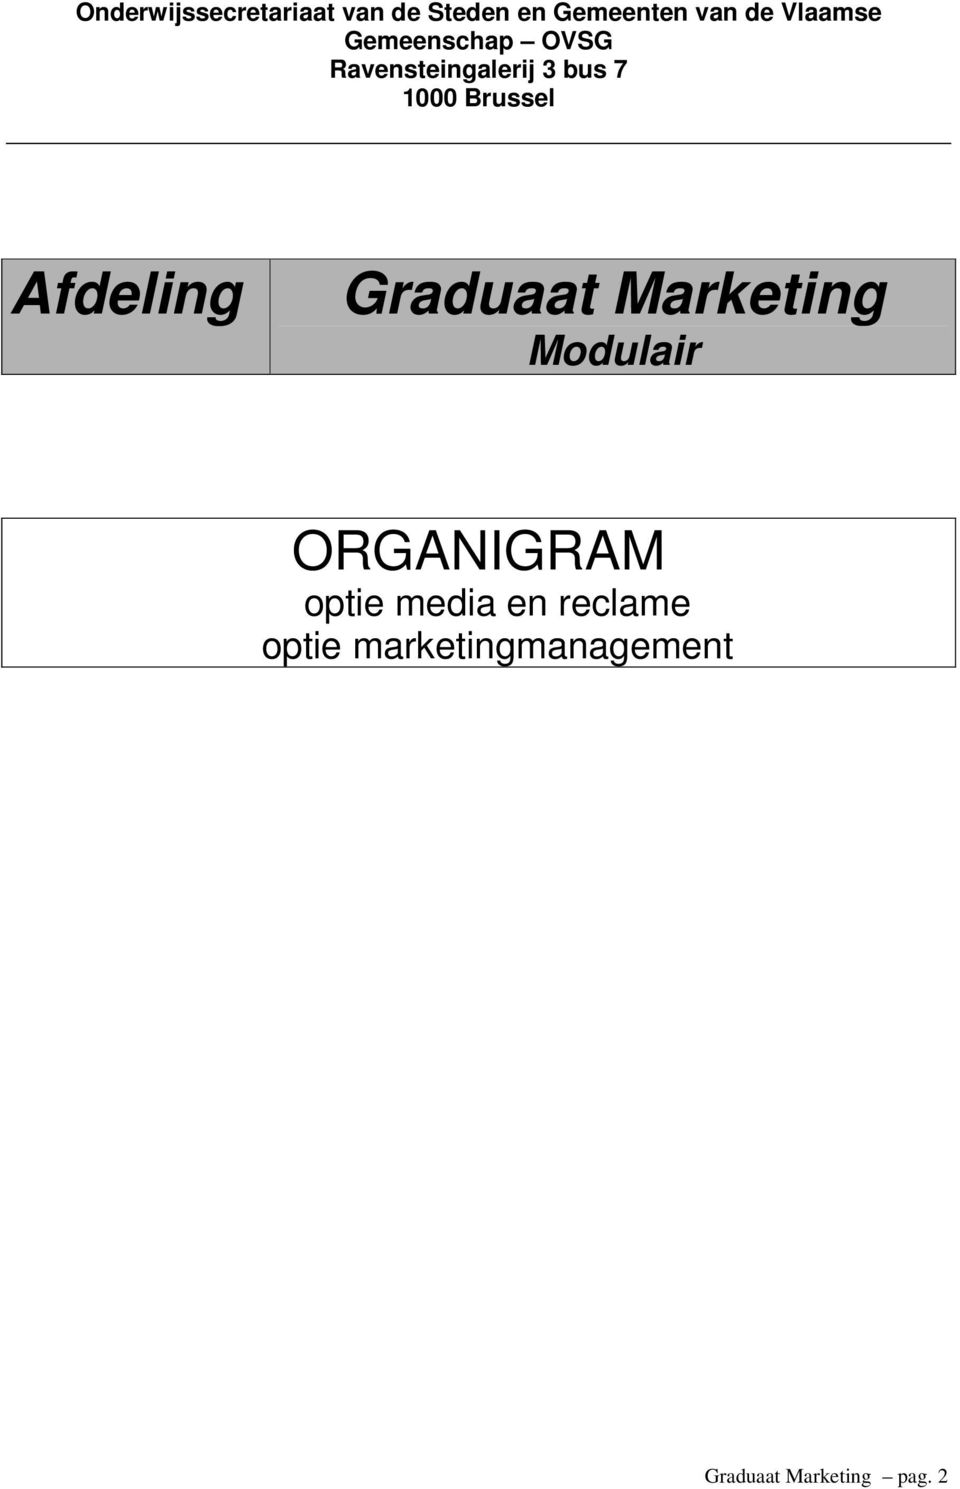 Brussel Afdeling Graduaat Marketing Modulair ORGANIGRAM